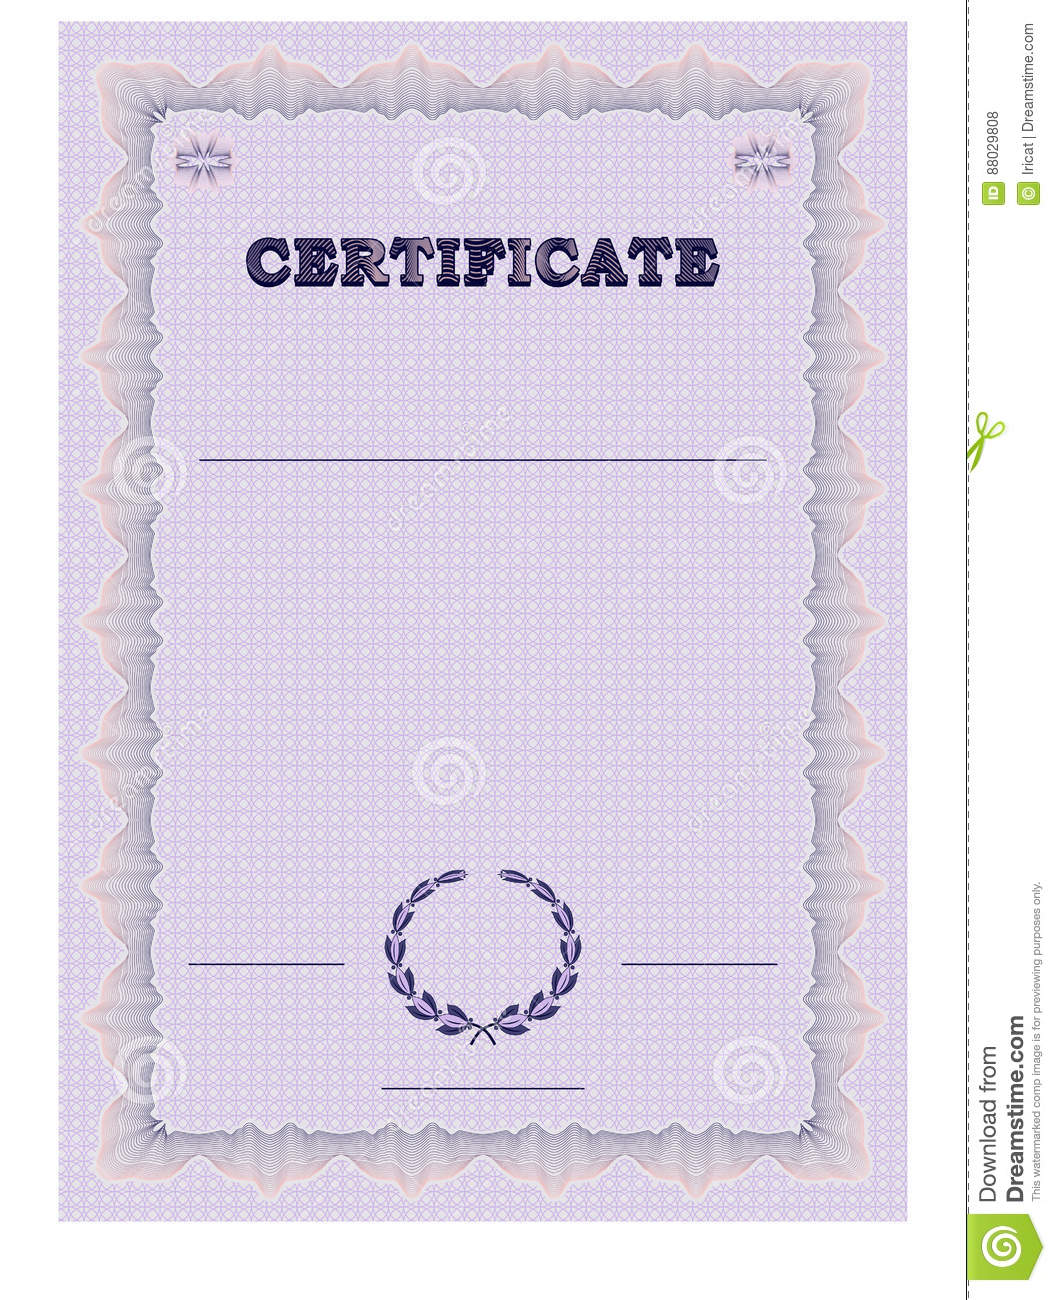 Certificate form template with guilloche background and guilloche certificate form template with guilloche background and guilloche elements yelopaper Choice Image